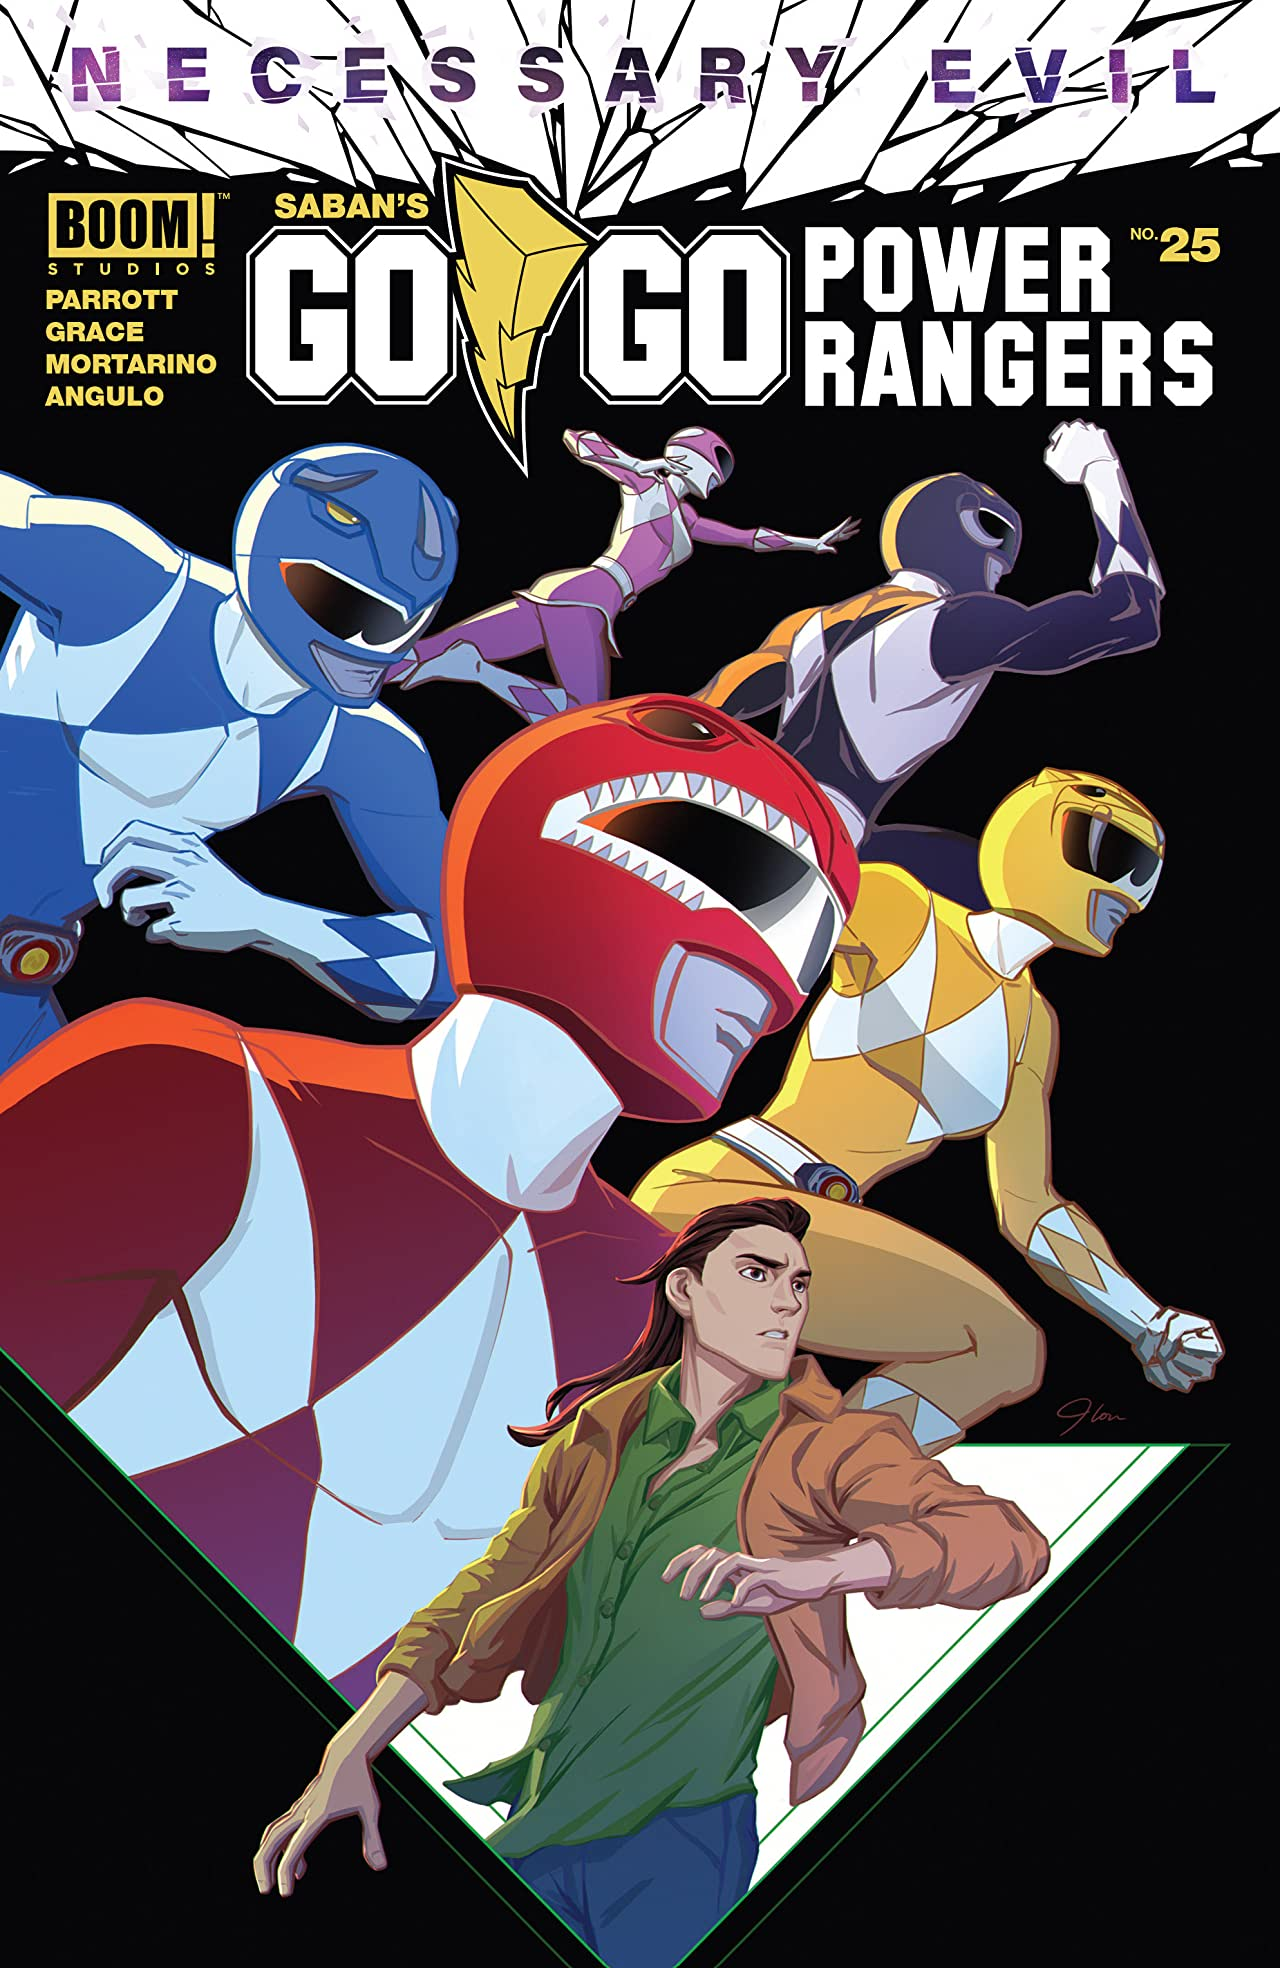 Saban's Go Go Power Rangers No.25